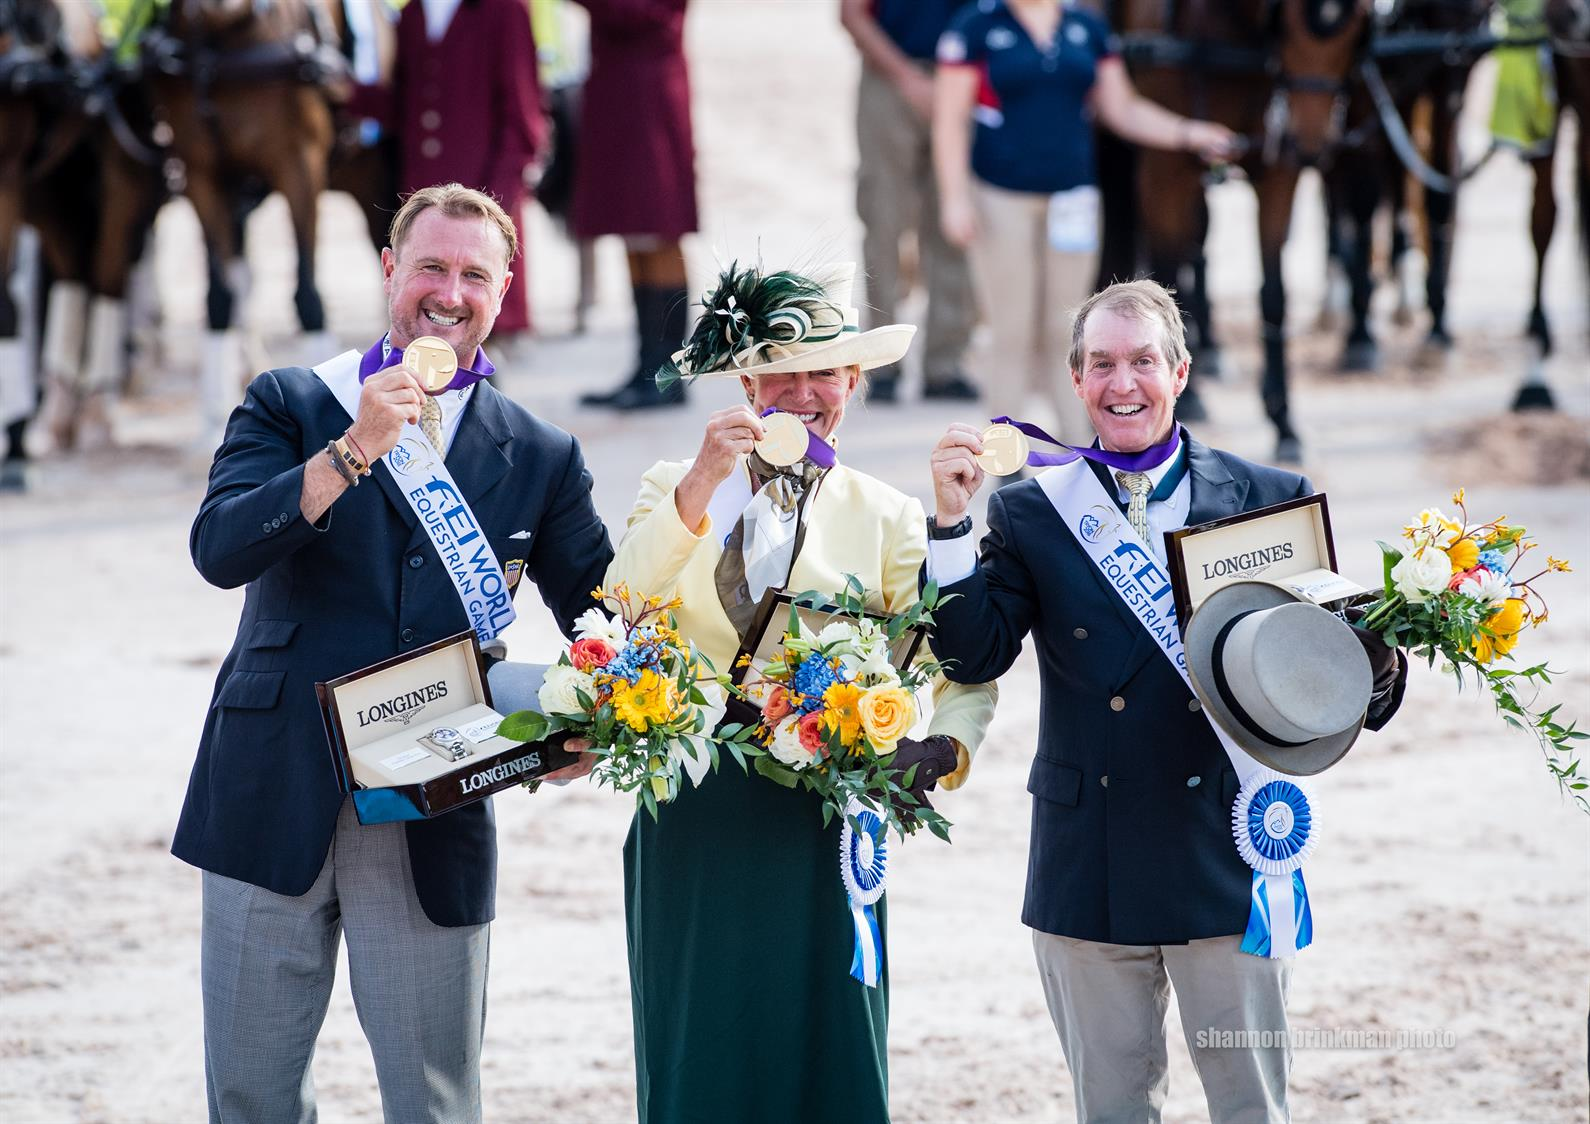 U.S. Driving Team Wins First-Ever FEI World Equestrian Games™ Gold Medal, Delivering Epic Grand Finale to Tryon 2018